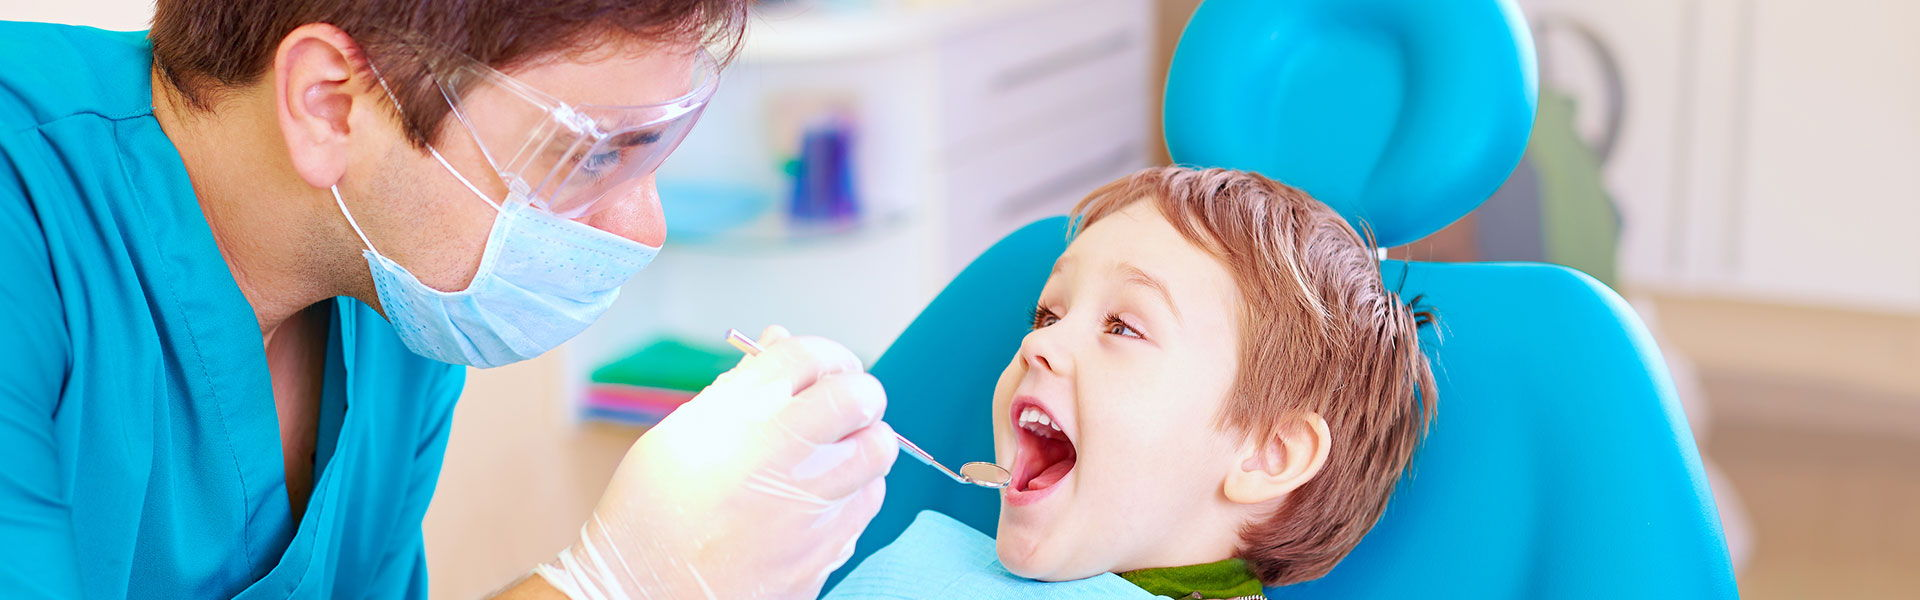 Pediatric Dentistry at Bencaz Family Dentistry Denham Springs, LA